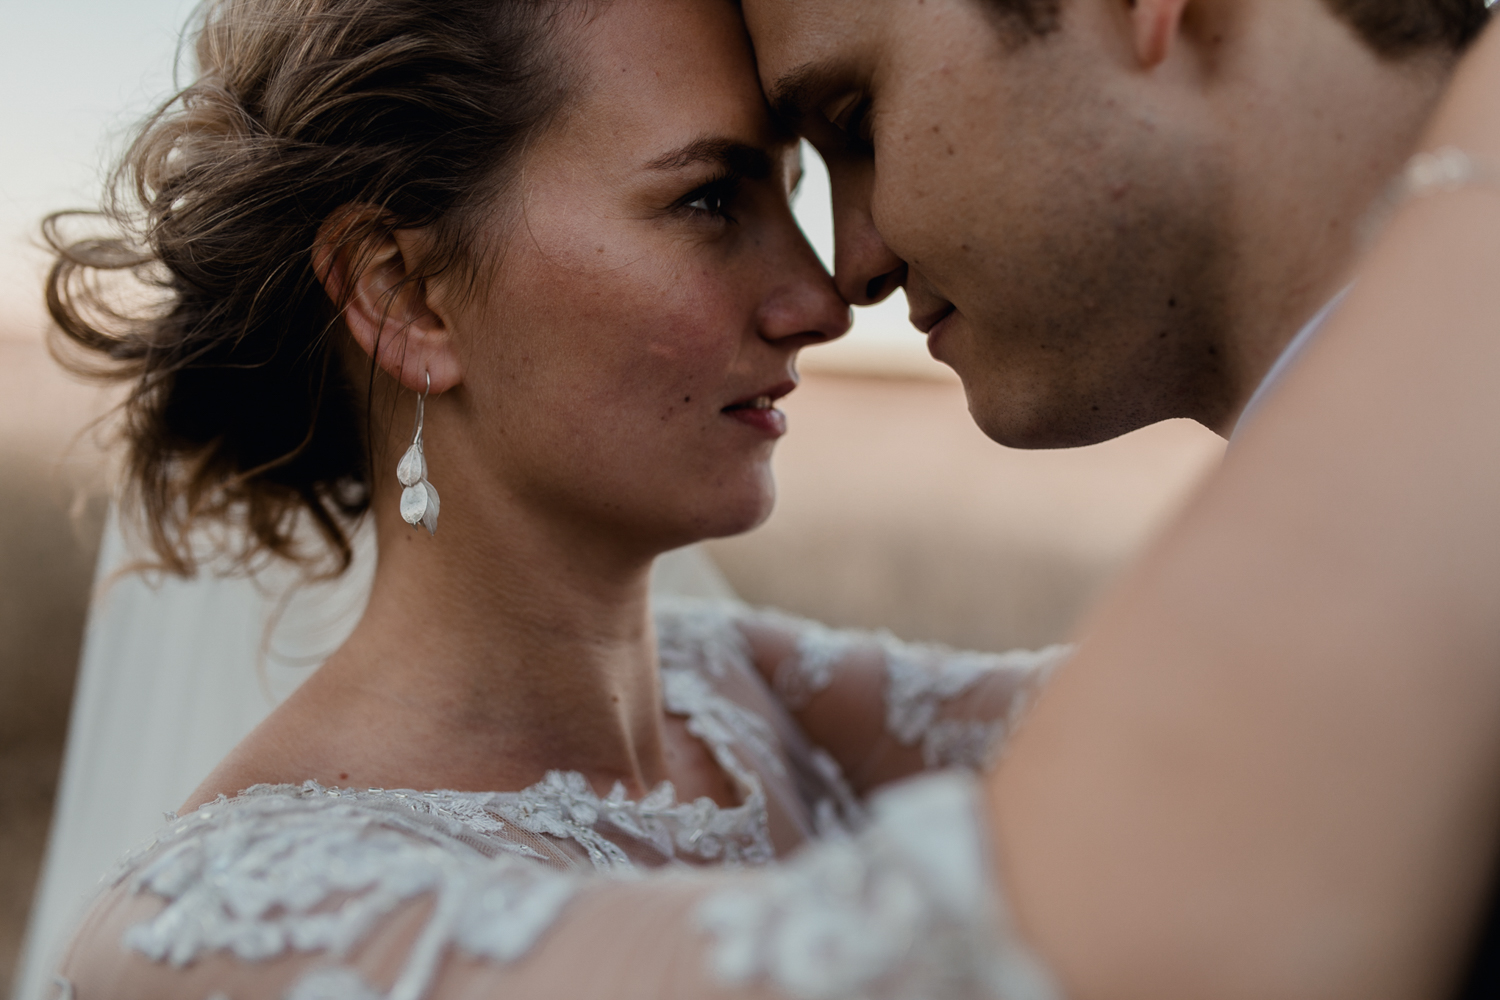 heisvisual-wedding-photographers-documentary-stellenbosch-south-africa027.jpg